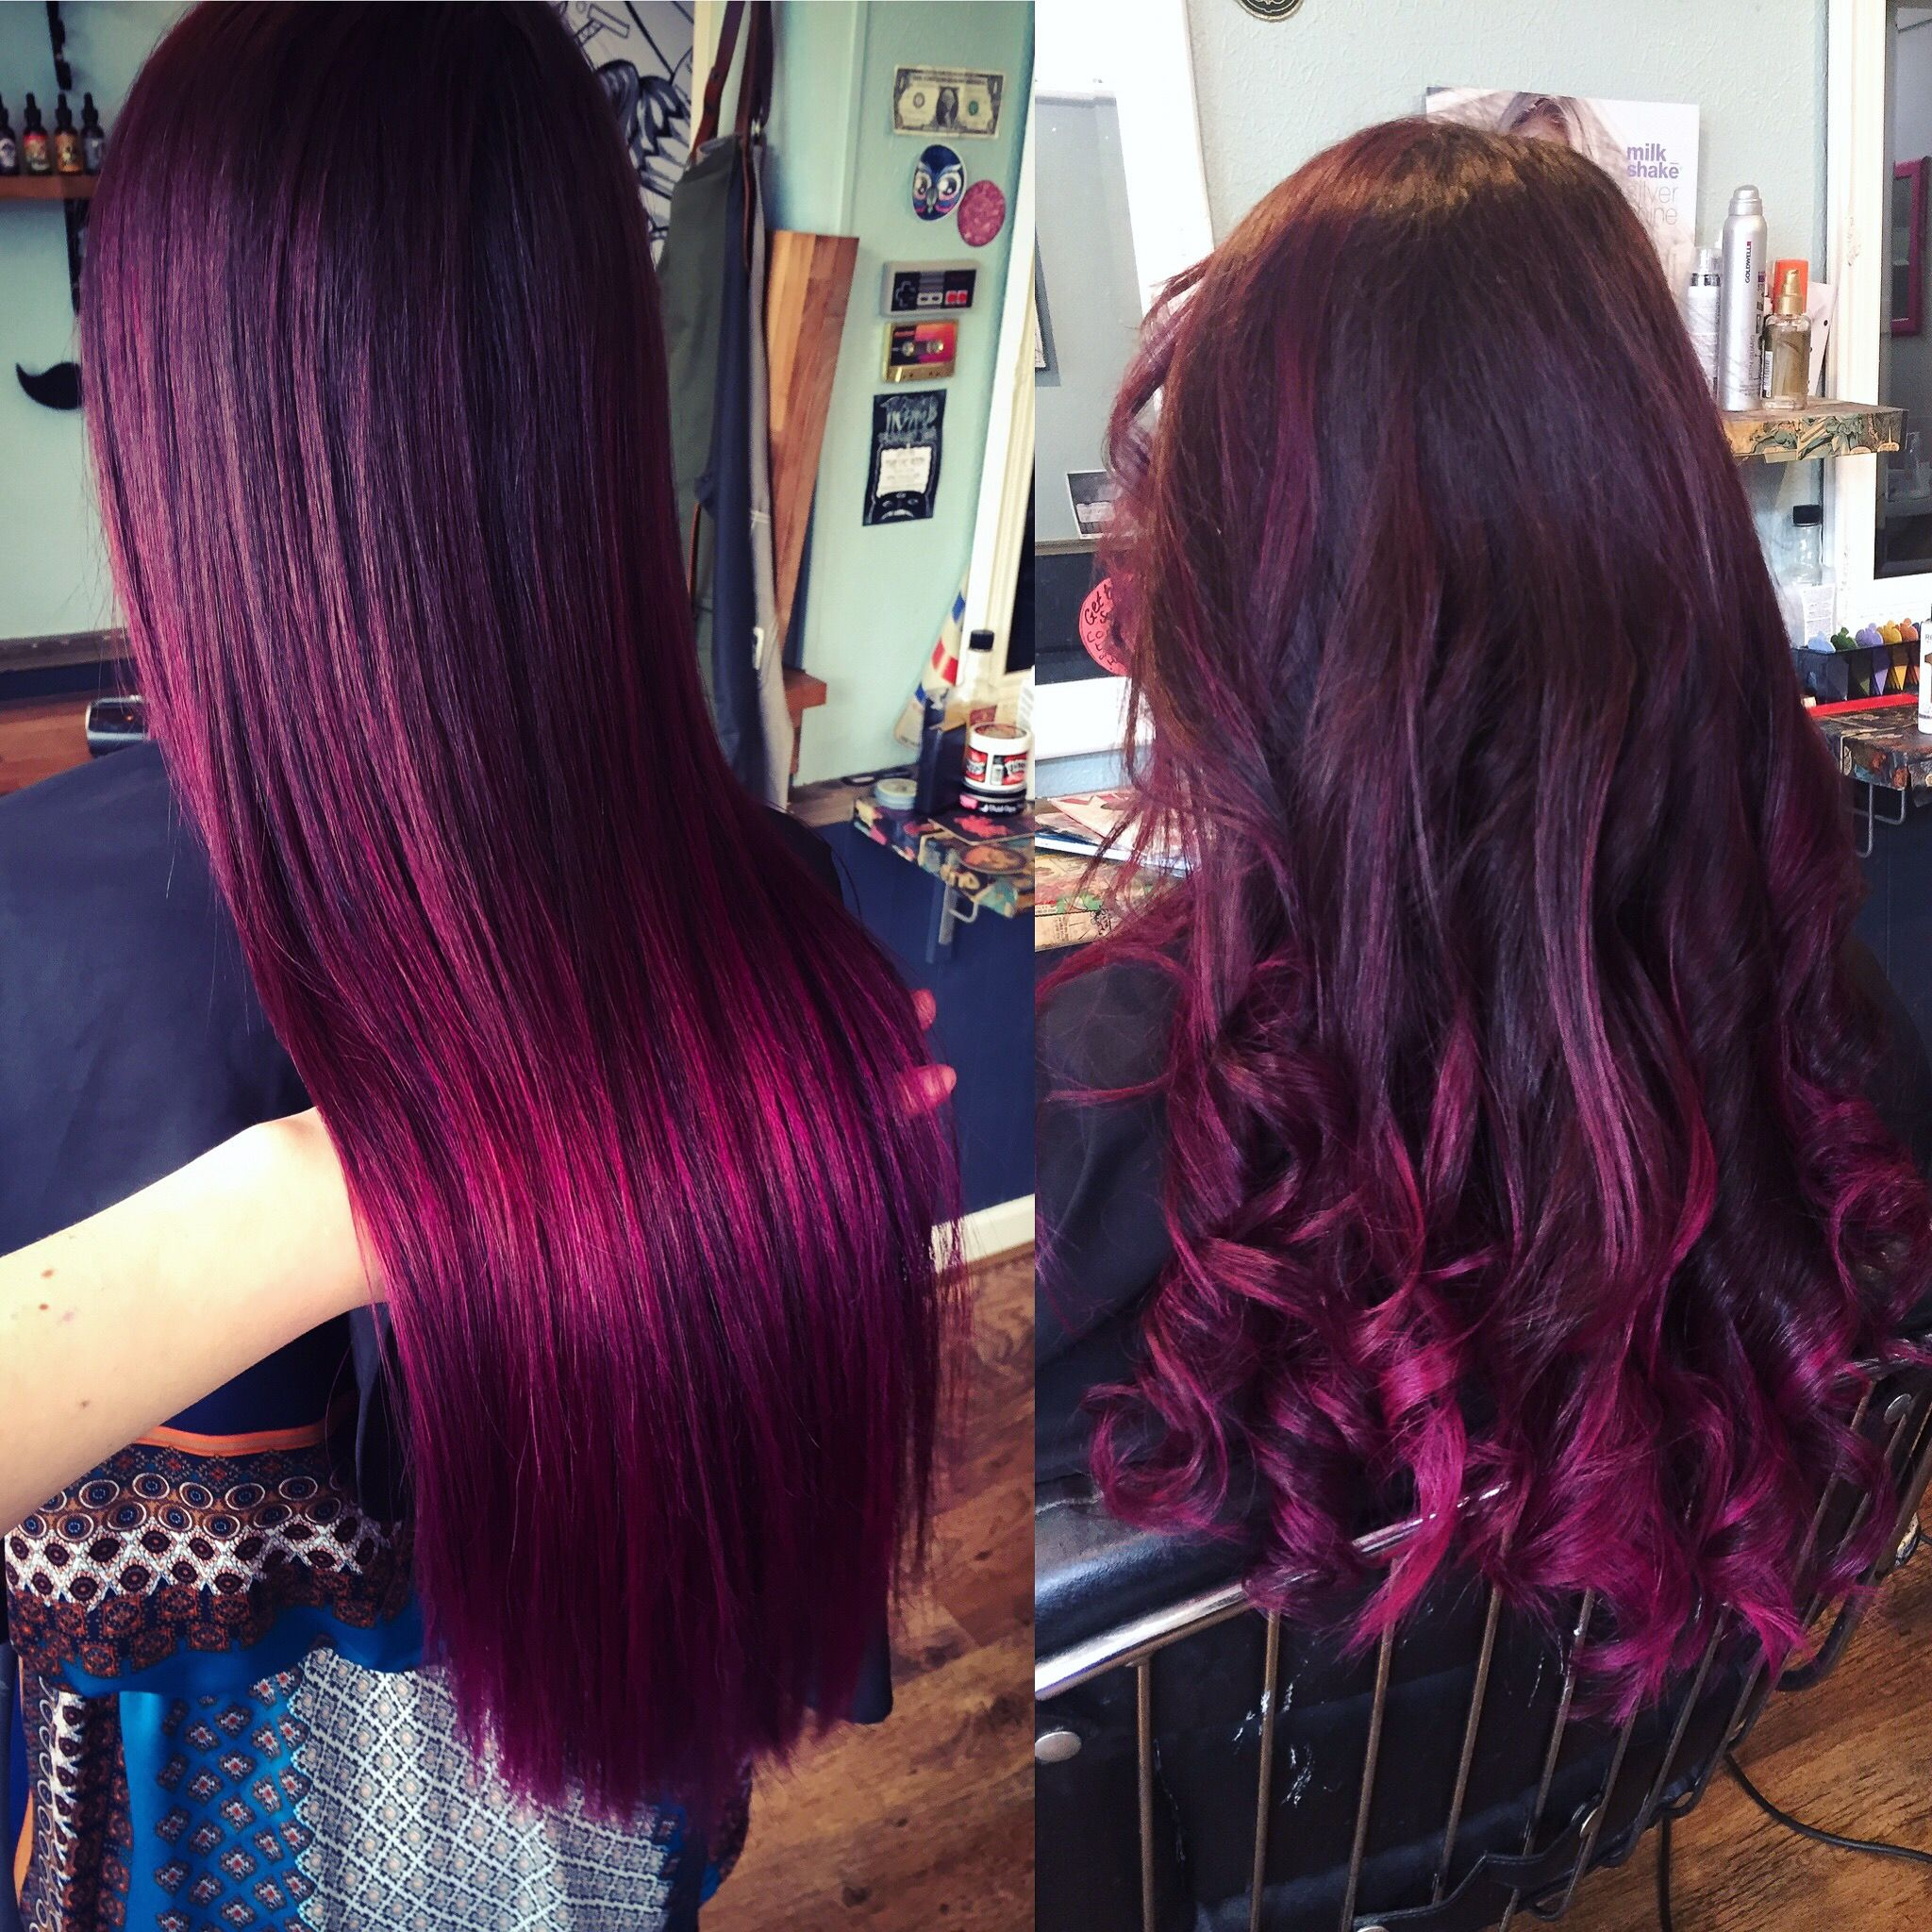 144a6a479df Mulberry magenta purple red balayage ombre brunette hair haircolor Steam  Hair Design Newquay Salon Poppy Augarde Hairdressing Cornwall Hairdressers  Olaplex ...